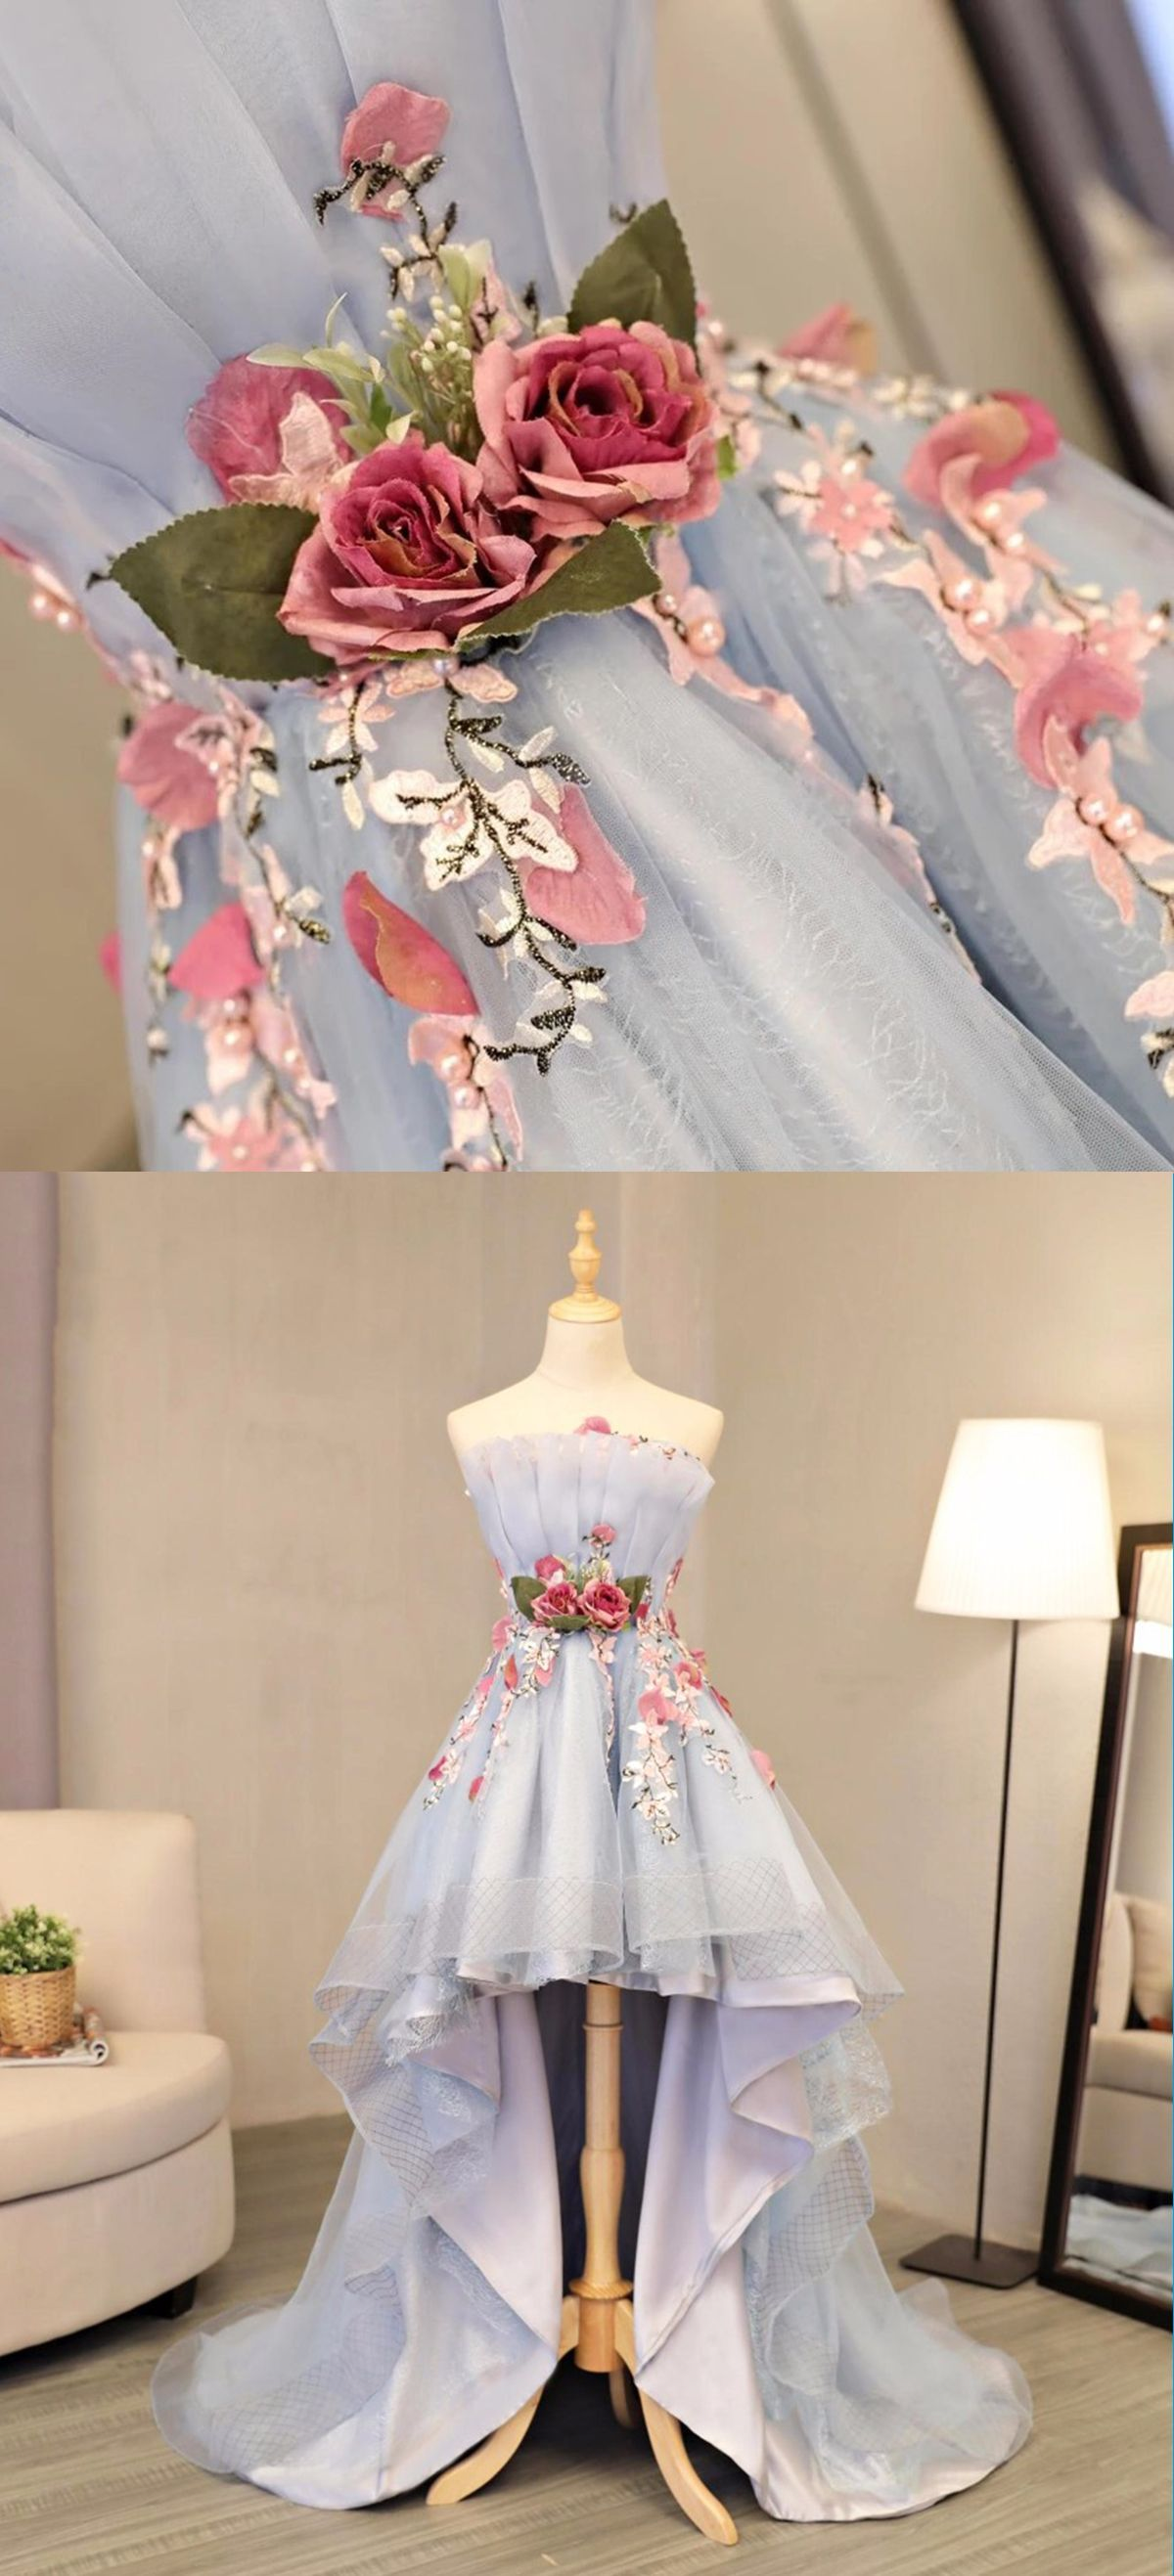 Skyblue tulle strapless high low flower appliques homecoming dress